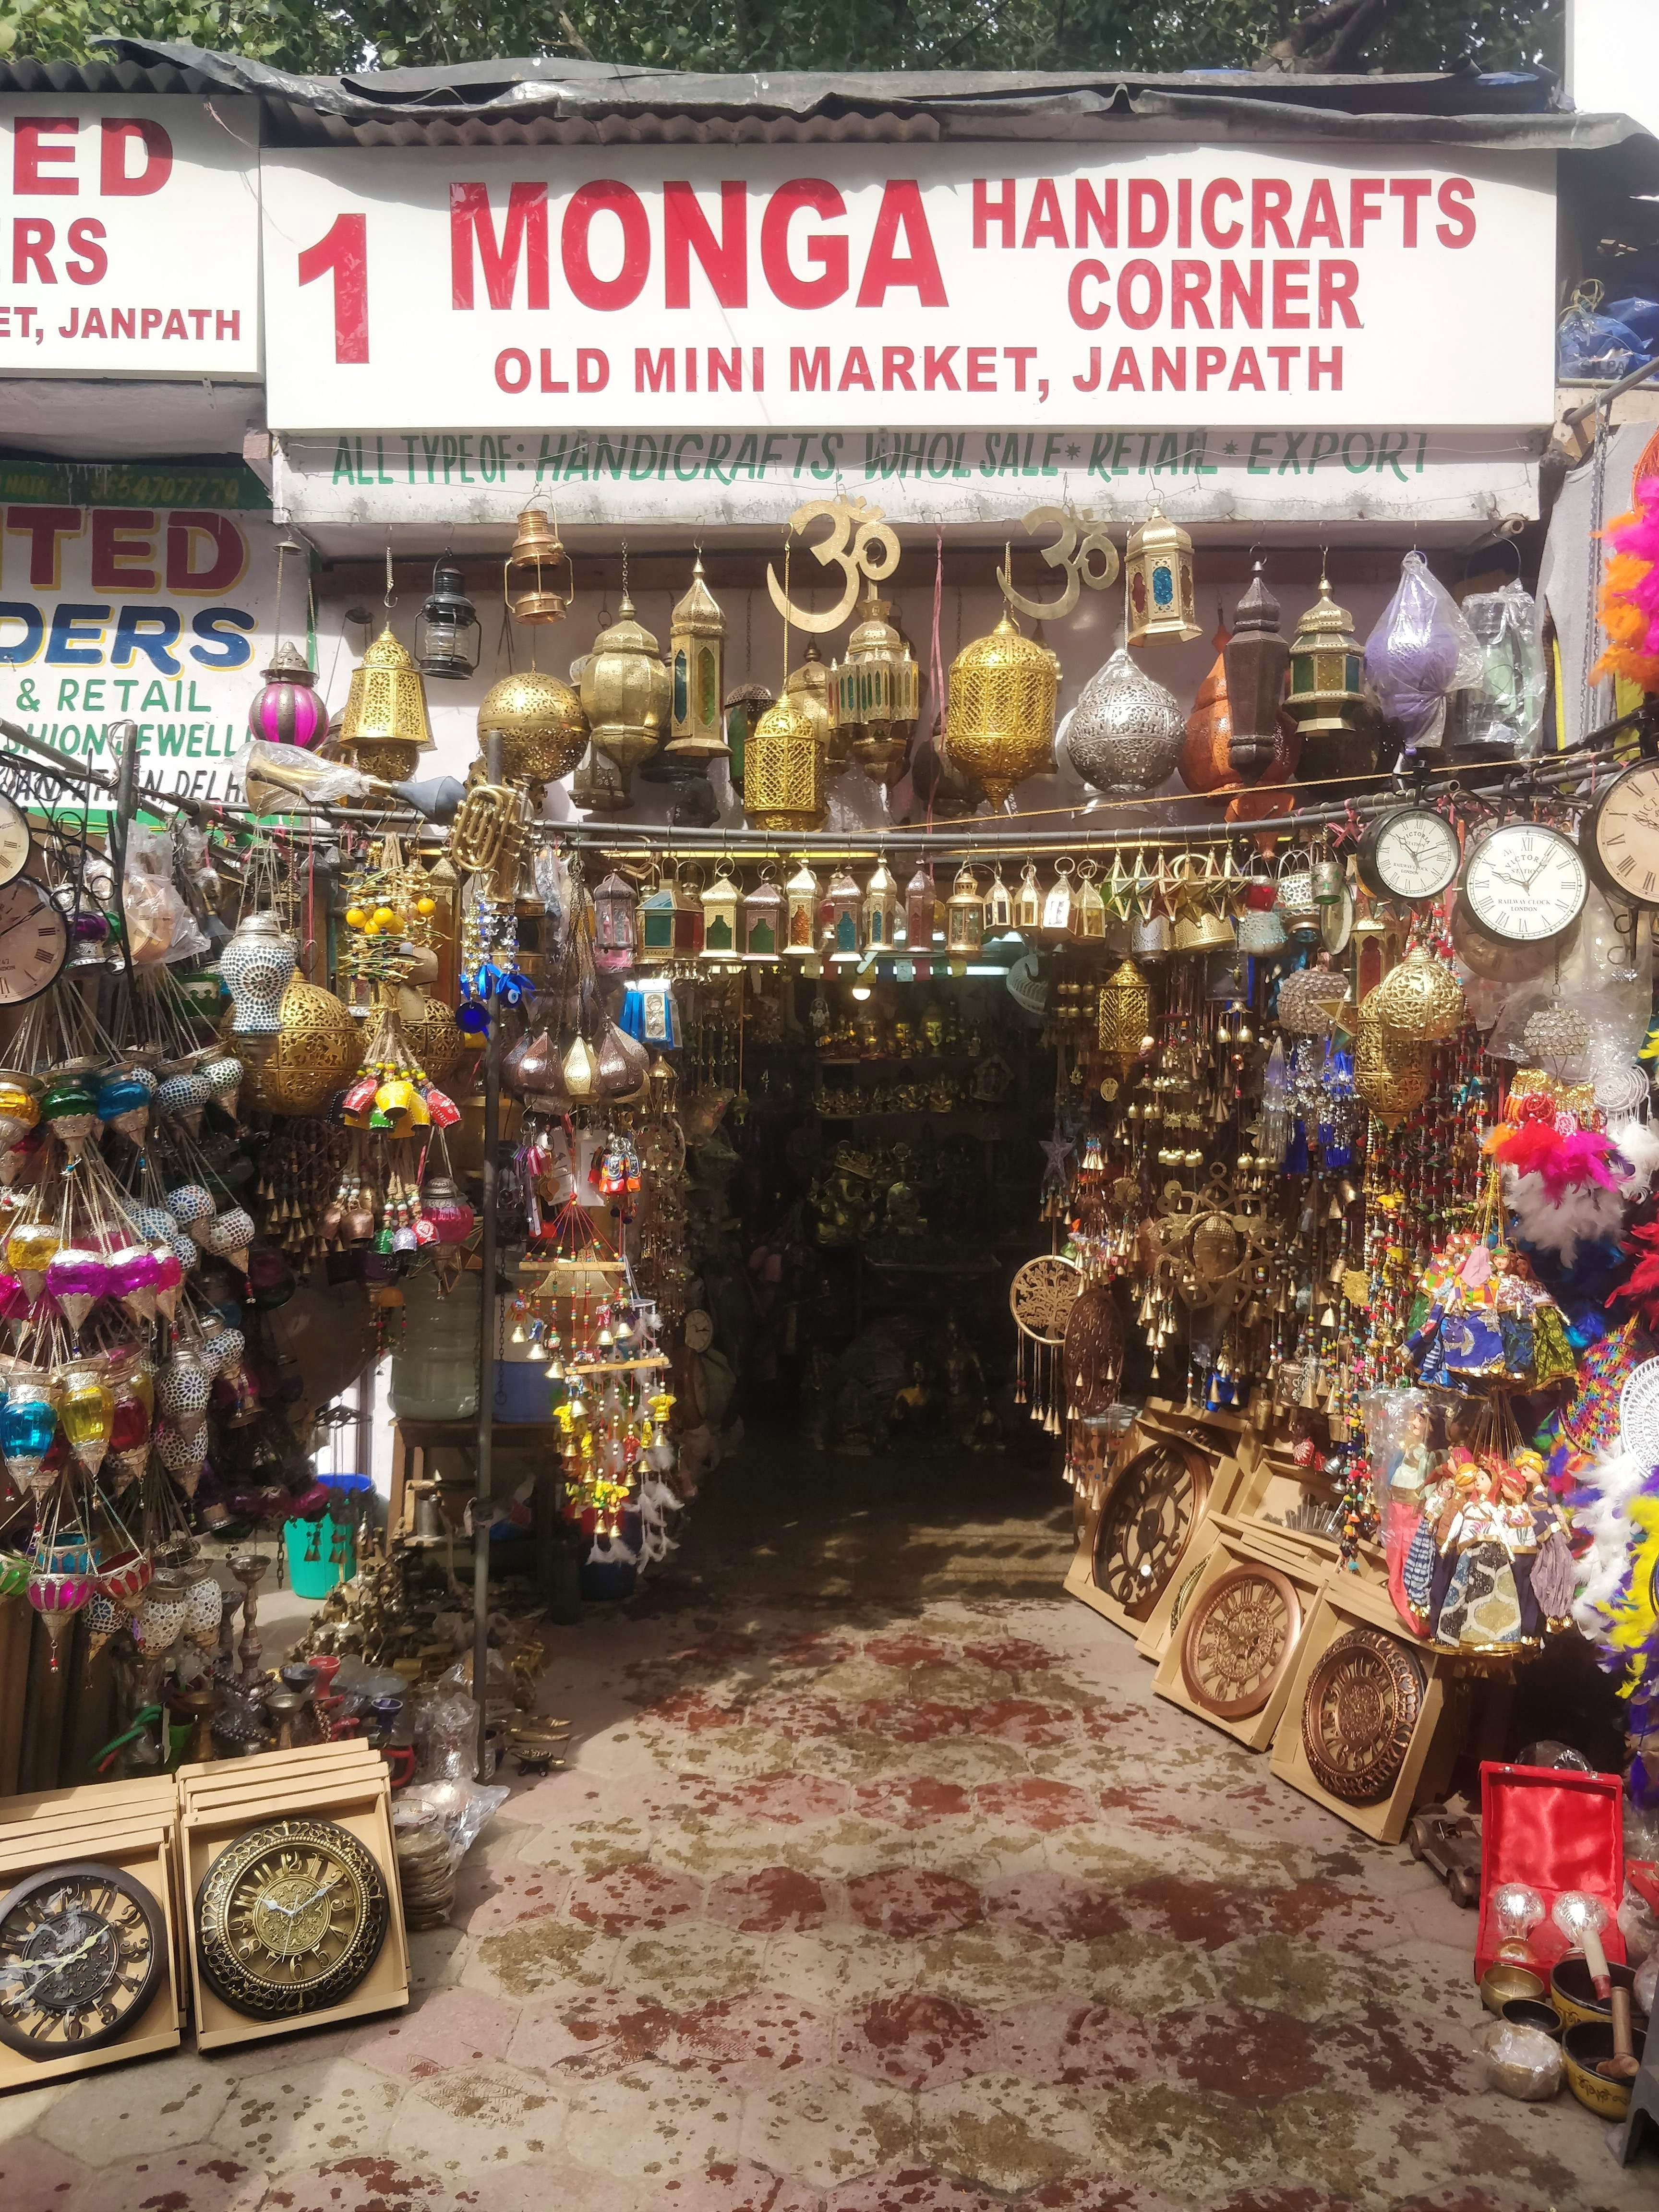 Bazaar,Market,Public space,Retail,Selling,Marketplace,Building,City,Shopping